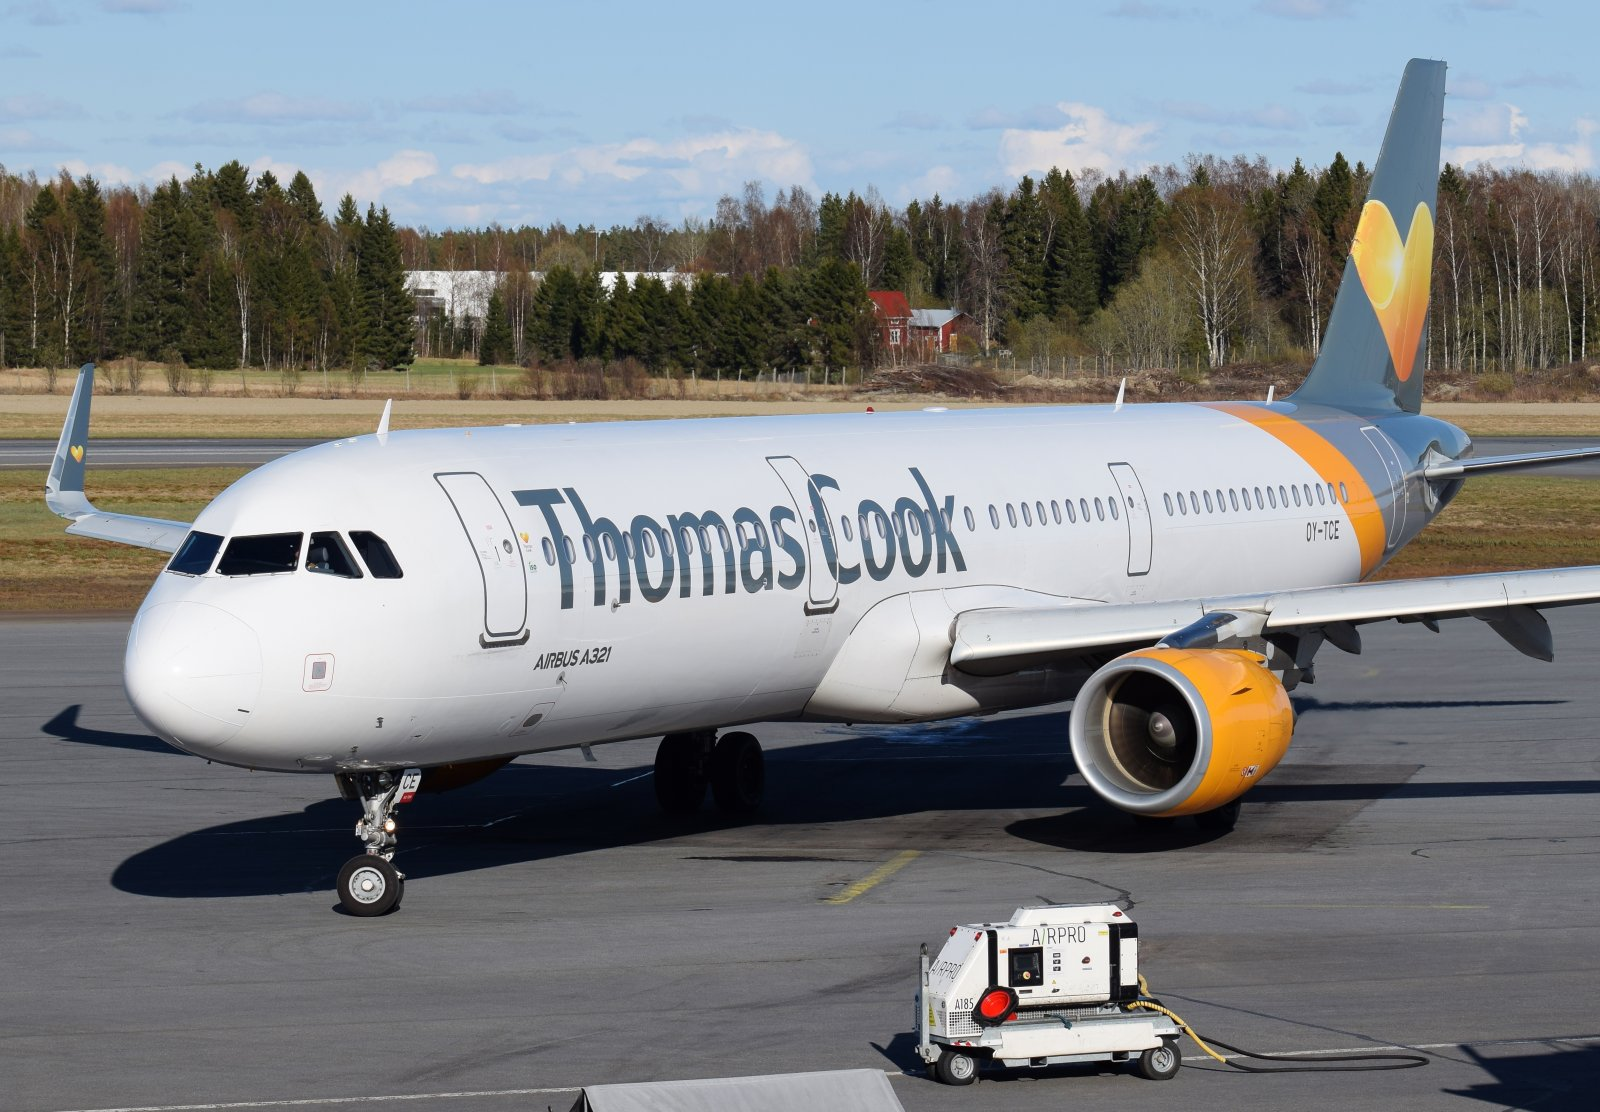 OY-TCE - Airbus A321-211 - Thomas Cook Airlines Scandinavia - 8.5.2019